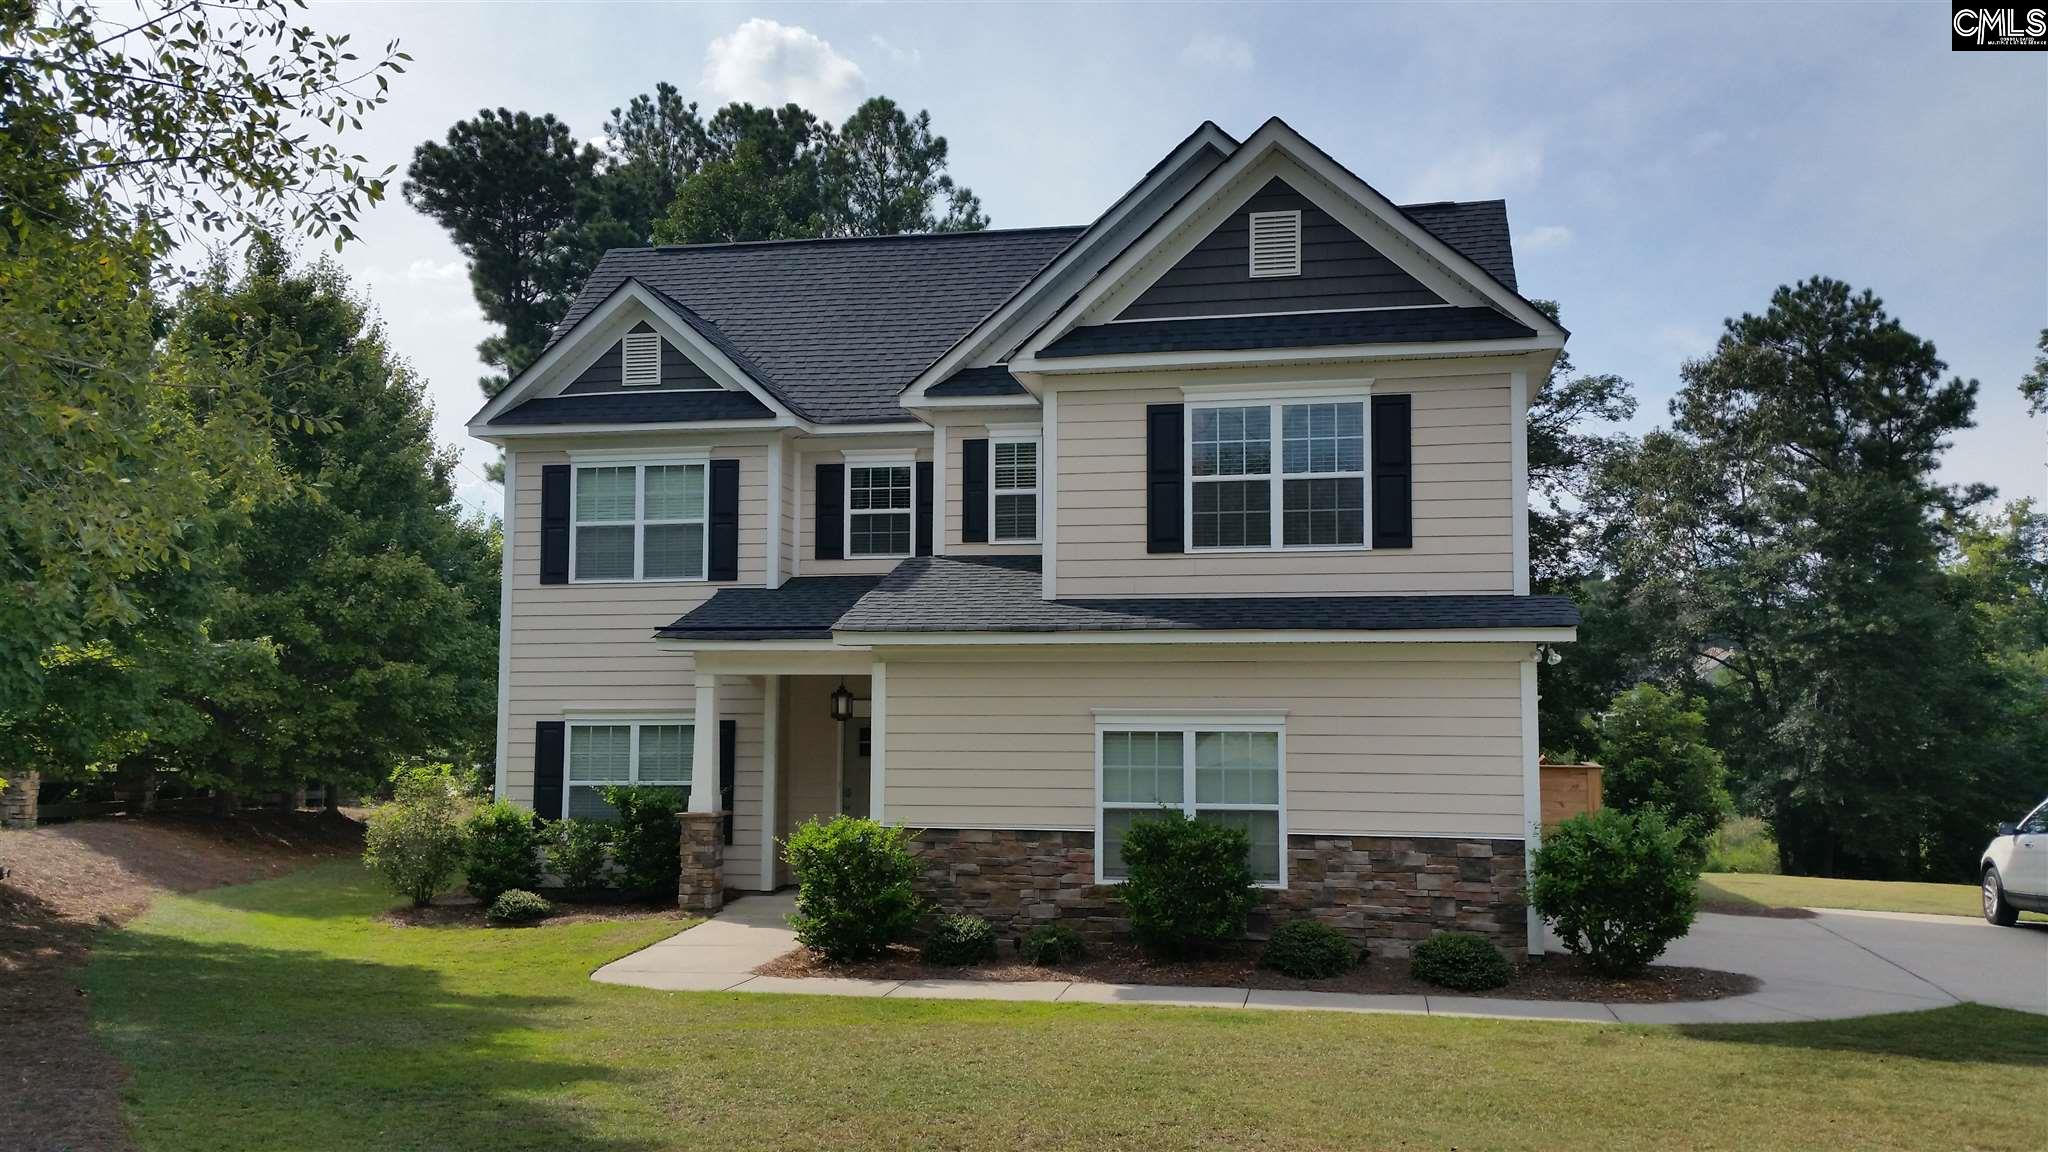 105 Kaminer Mill Lexington, SC 29072